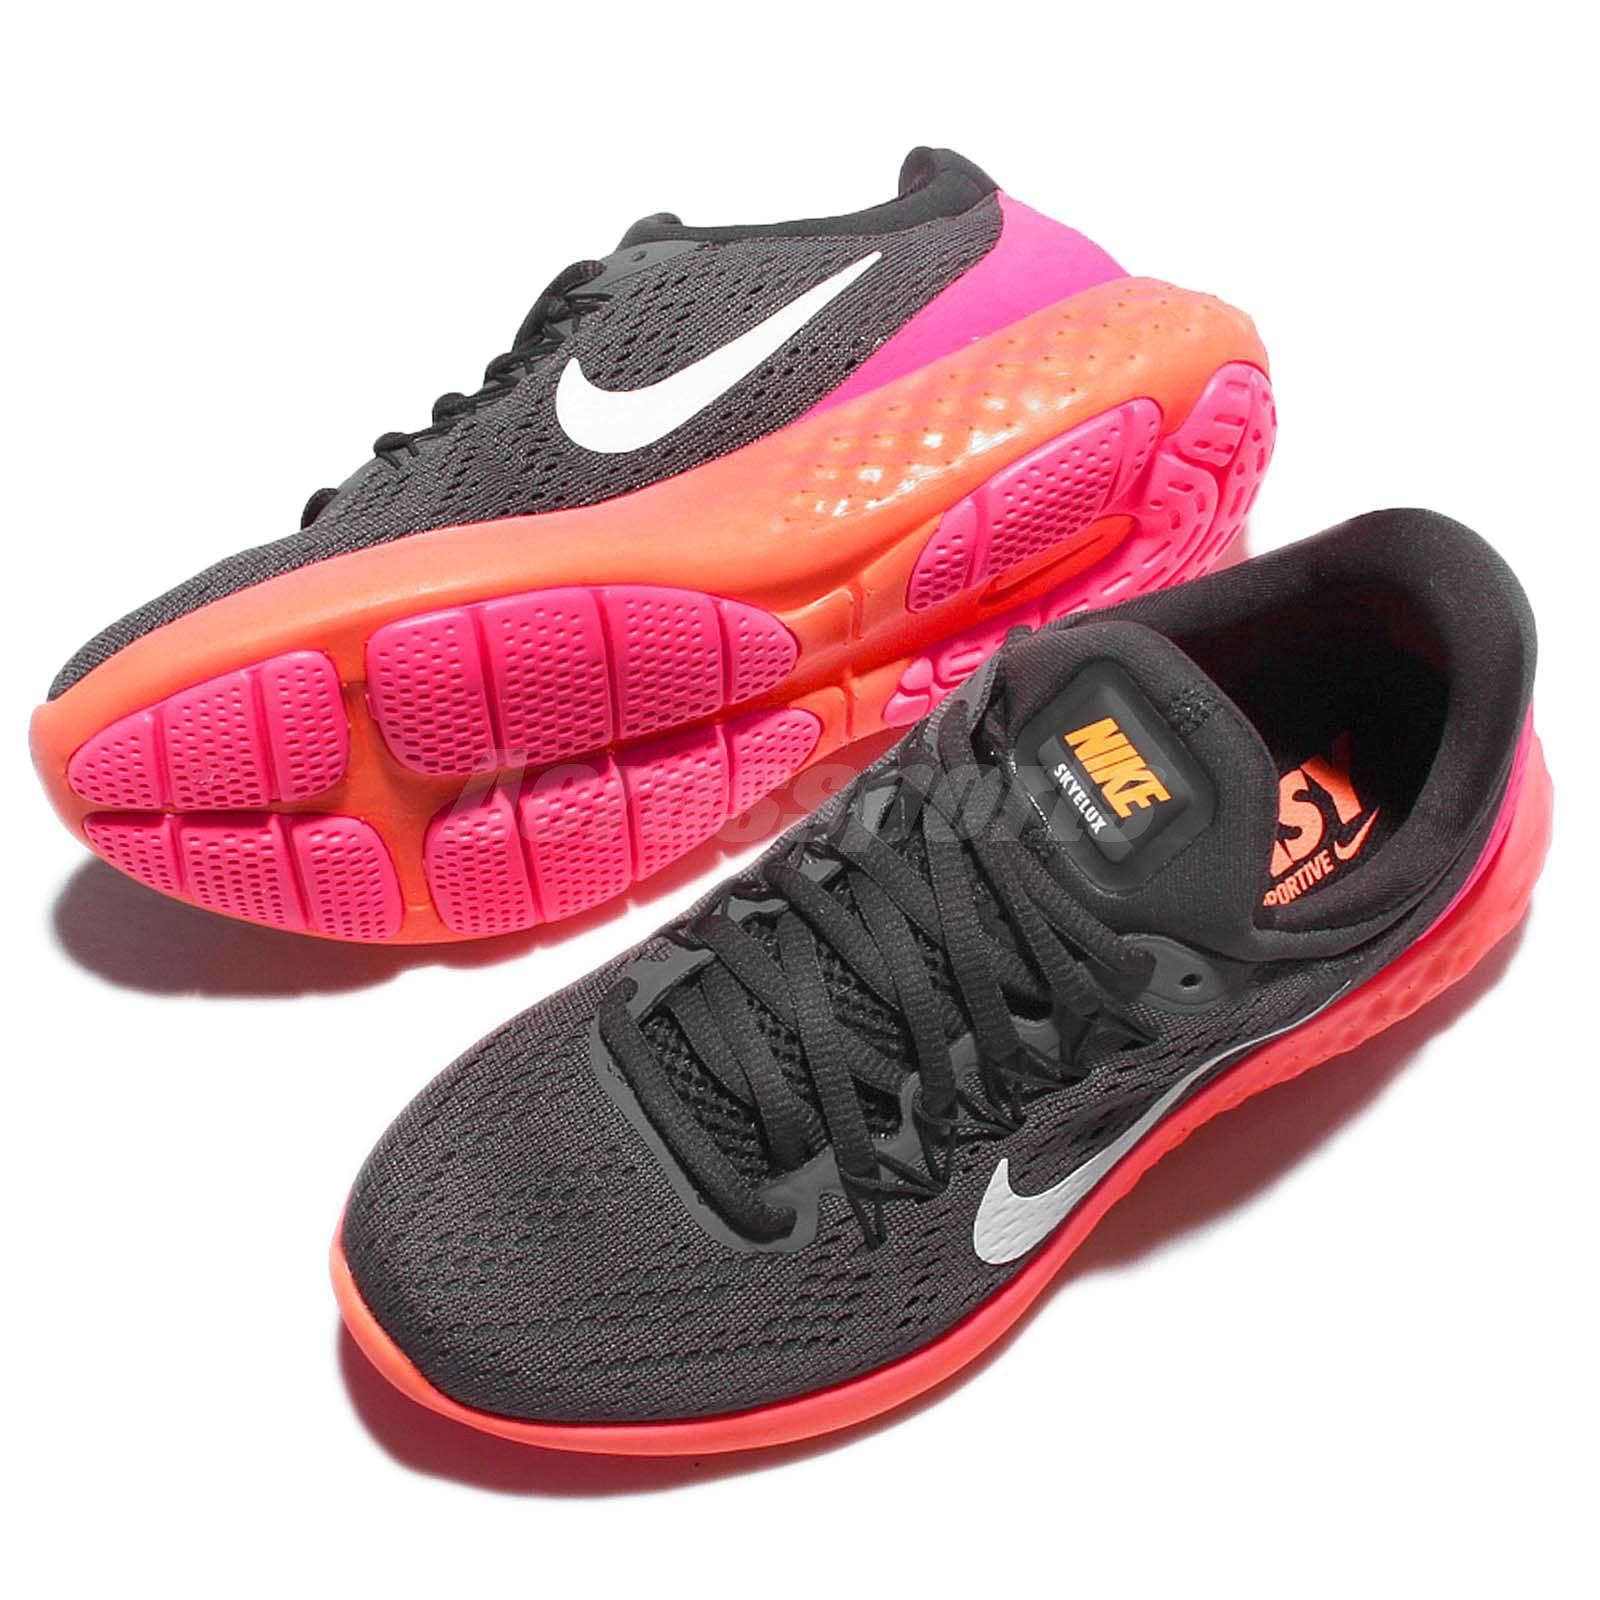 nike sandal for women pink and orange girls Golf Driver Loft and Max  Distance. Nike Air ... 36ee5f8a6